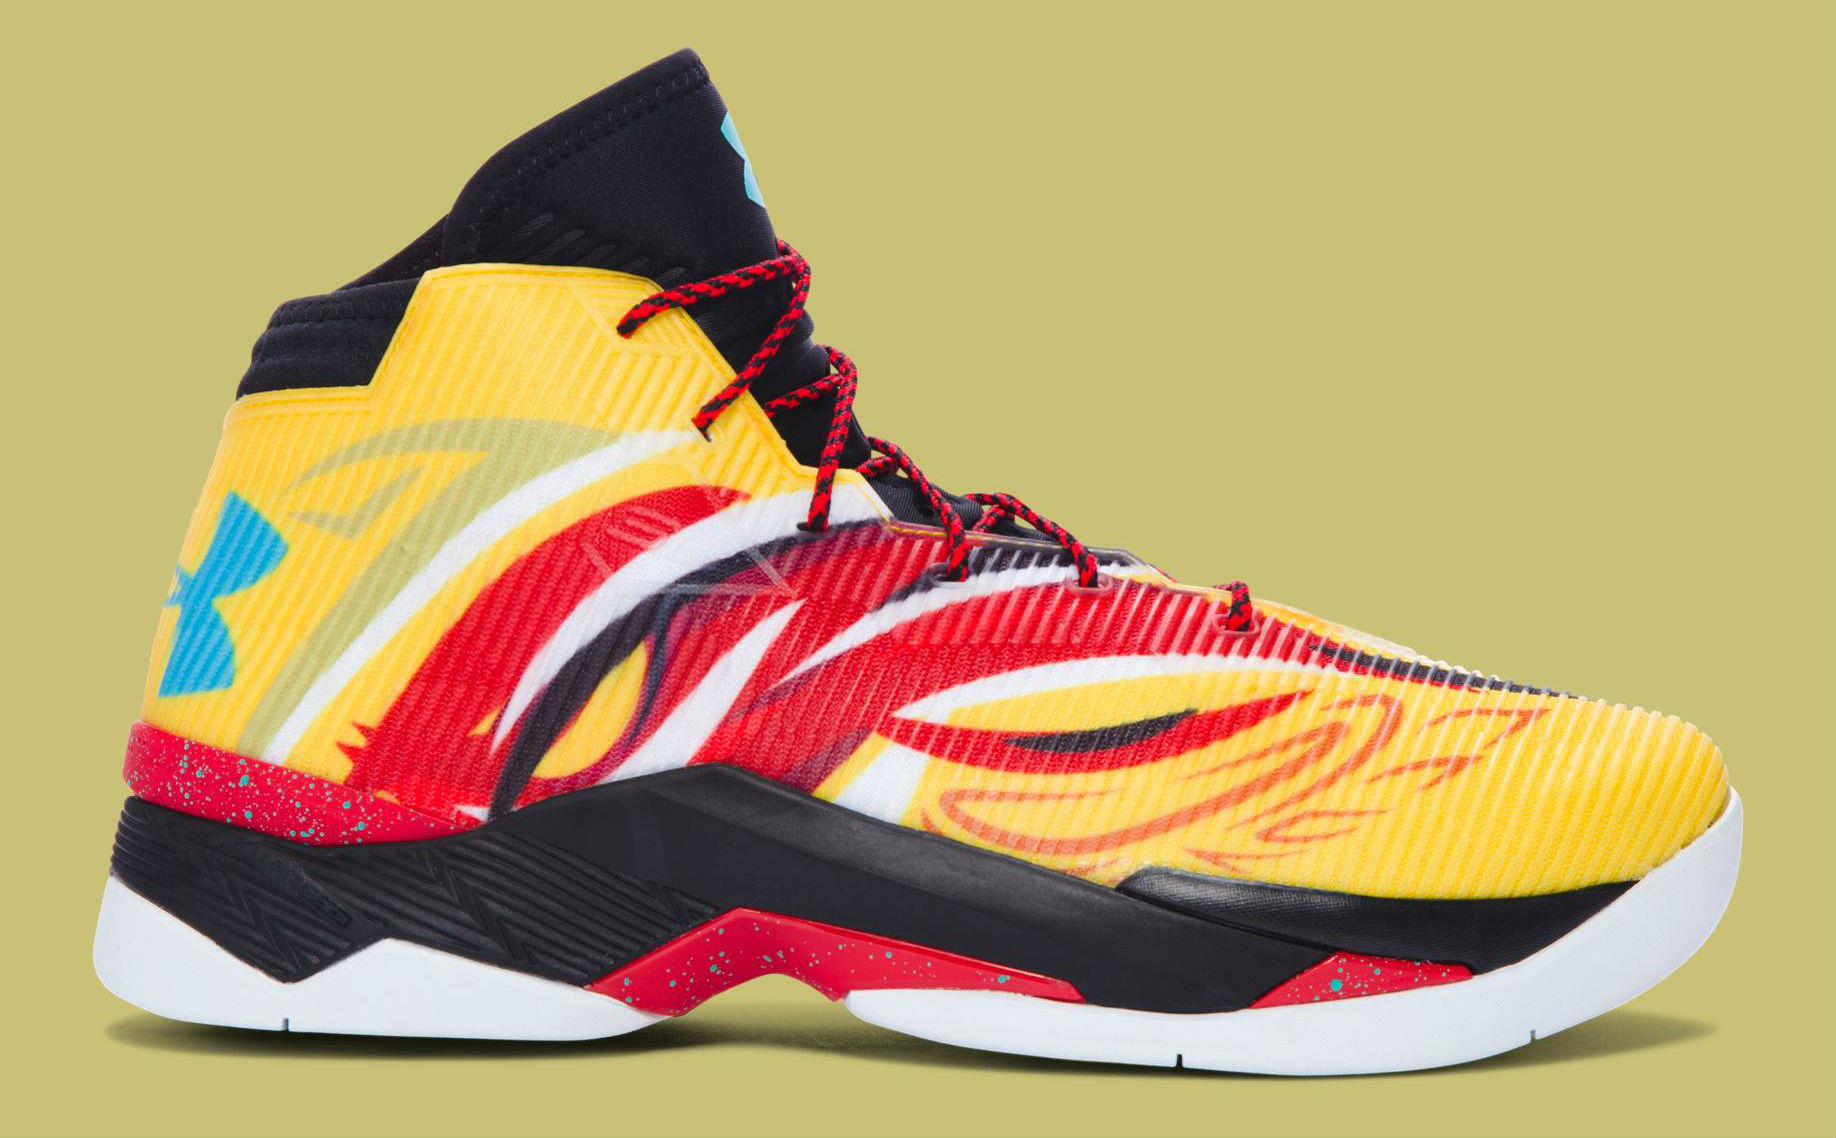 Steph Curry's New 'Chef' Sneakers Serve Up Only Dad Jokes Time